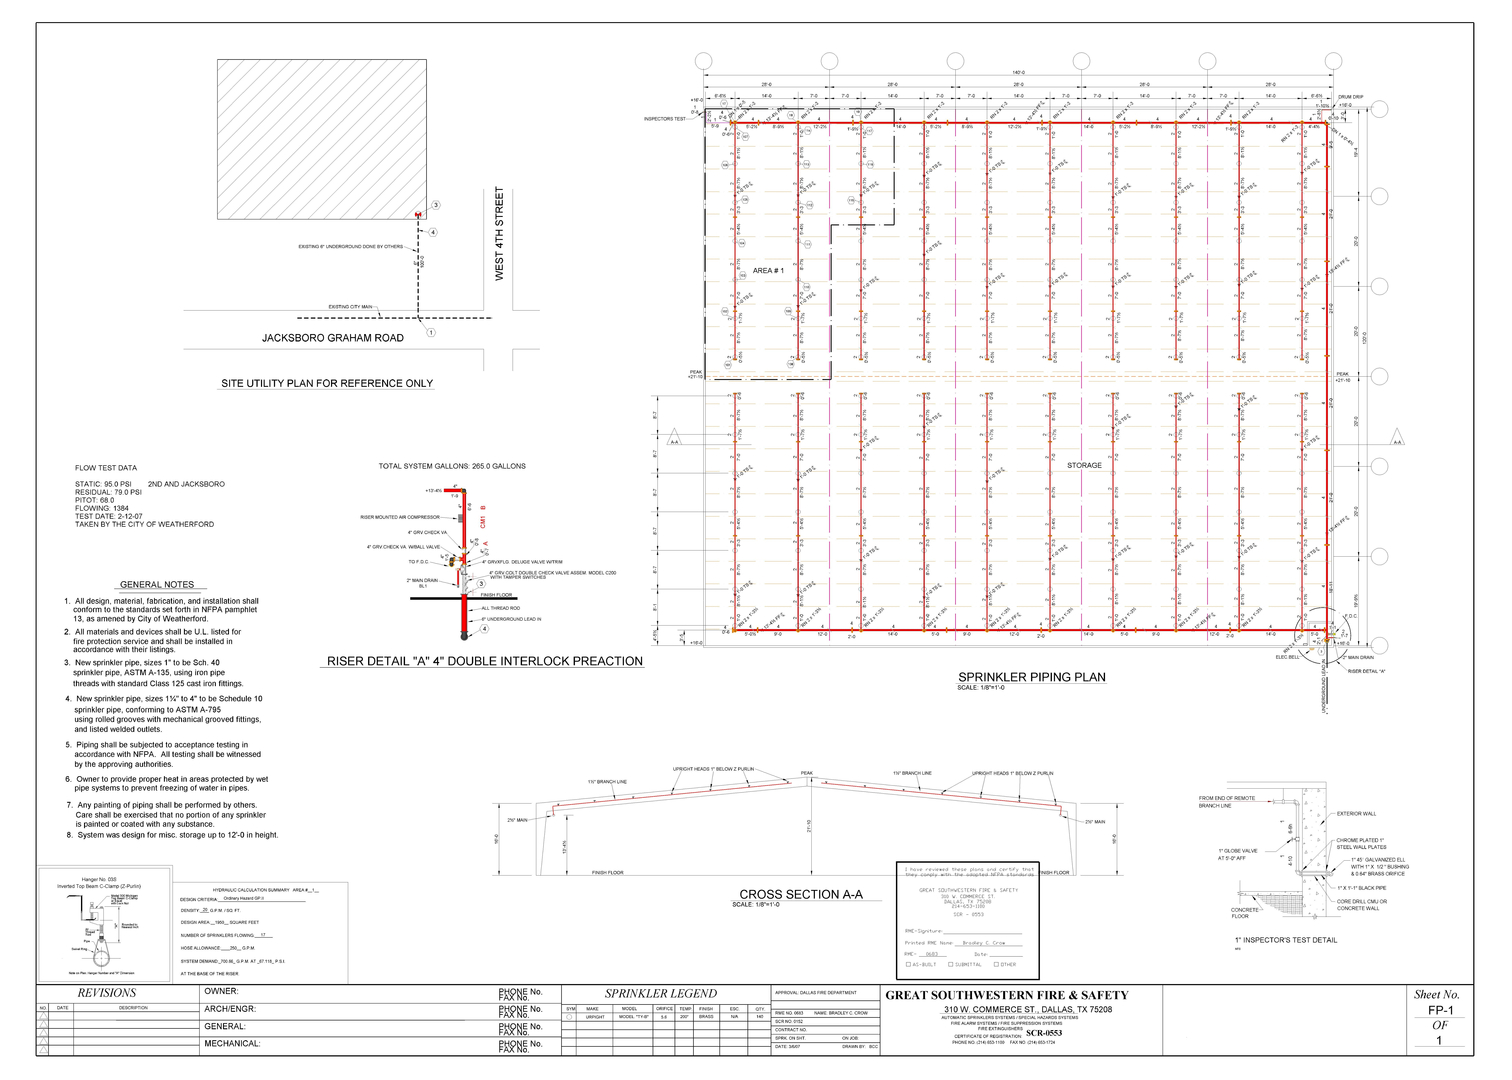 Great Southwestern Fire Safety Sprinkler Systems Piping Layout Considerations Design